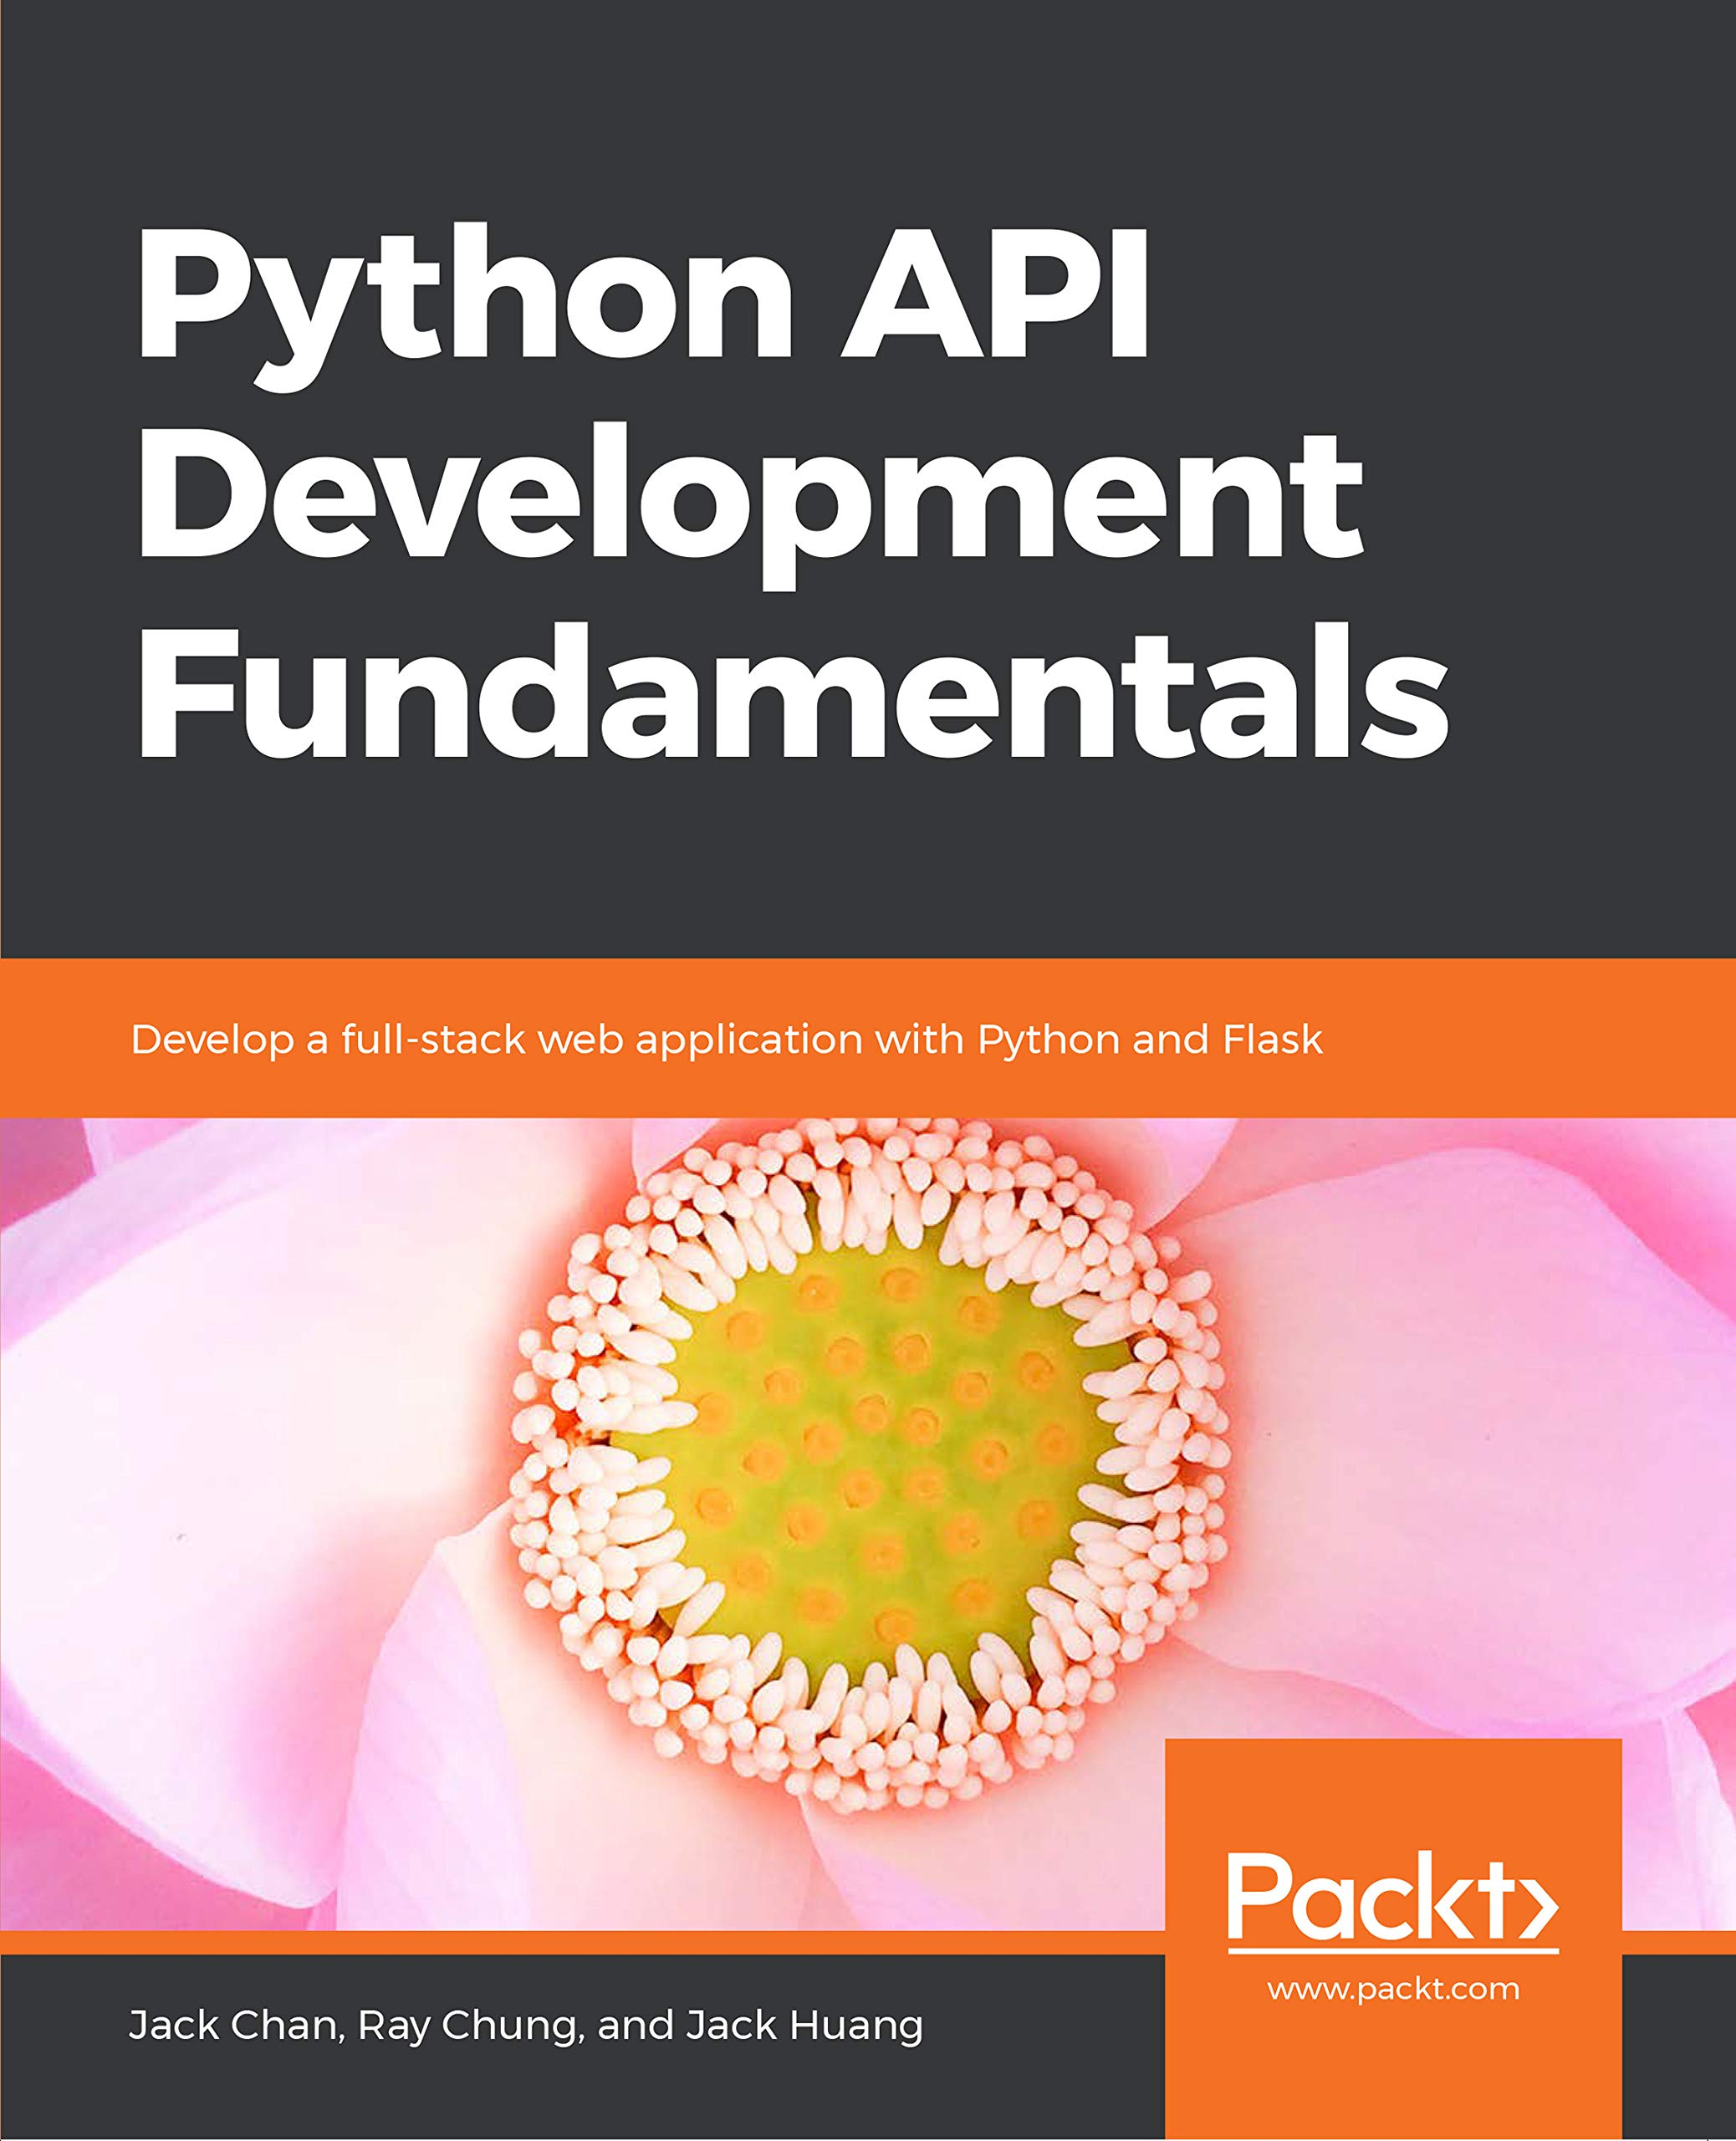 Python API Development Fundamentals: Develop a full-stack web application with Python and Flask